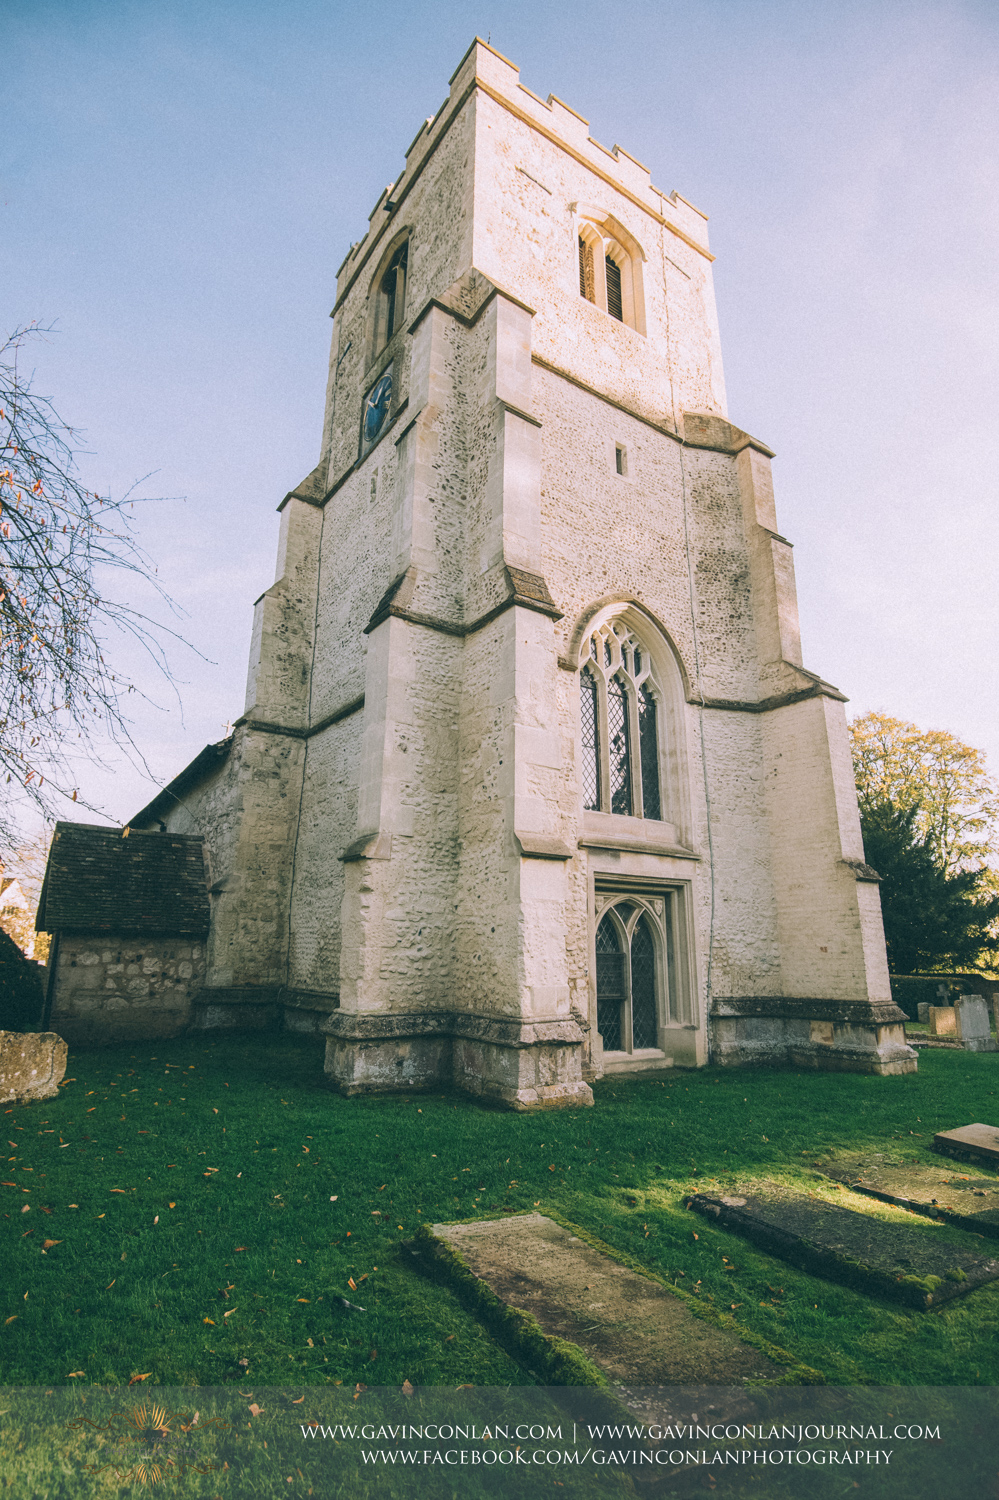 exterior of the Parish Church St. Andrew and St. Mary as featured in the ITV drama Grantchester, Cambridgeshire